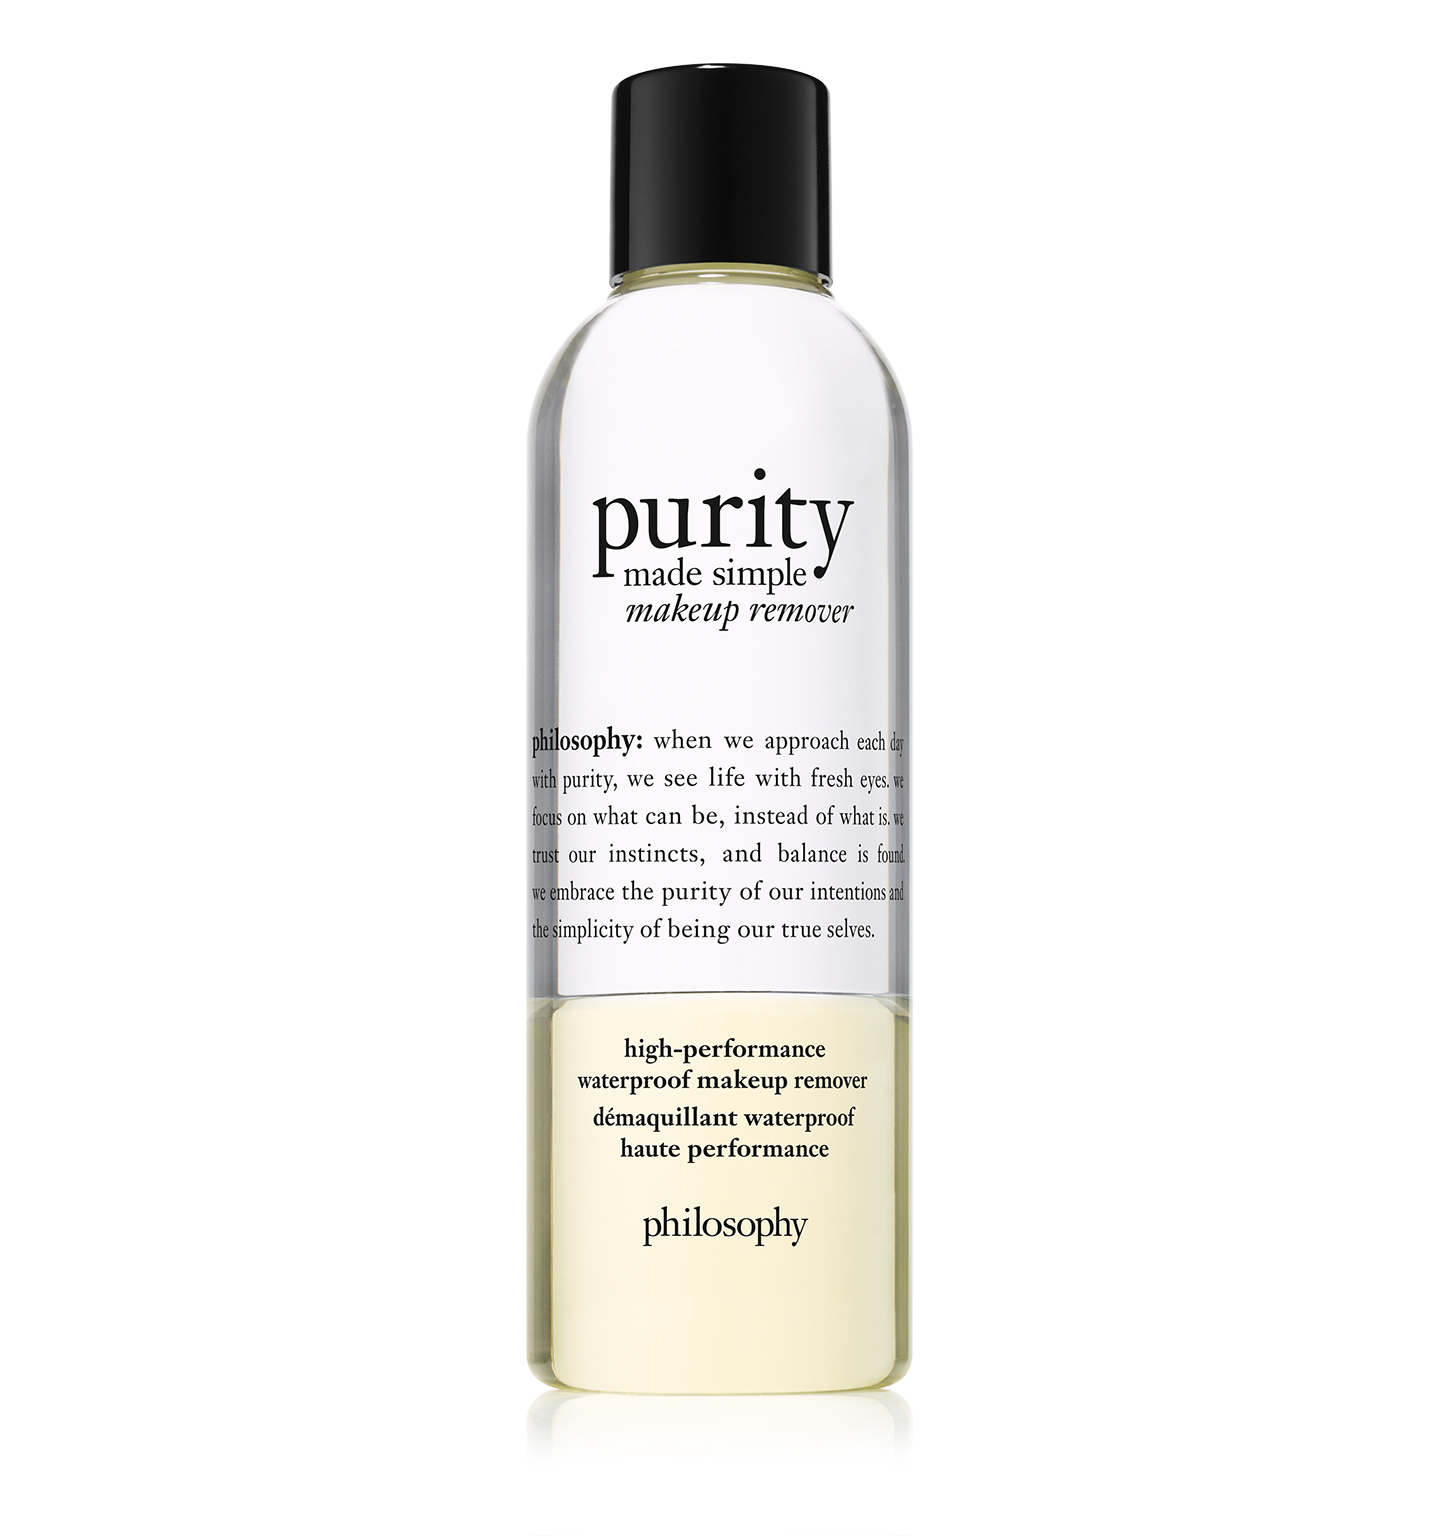 philosophy, purity made simple make-up remover